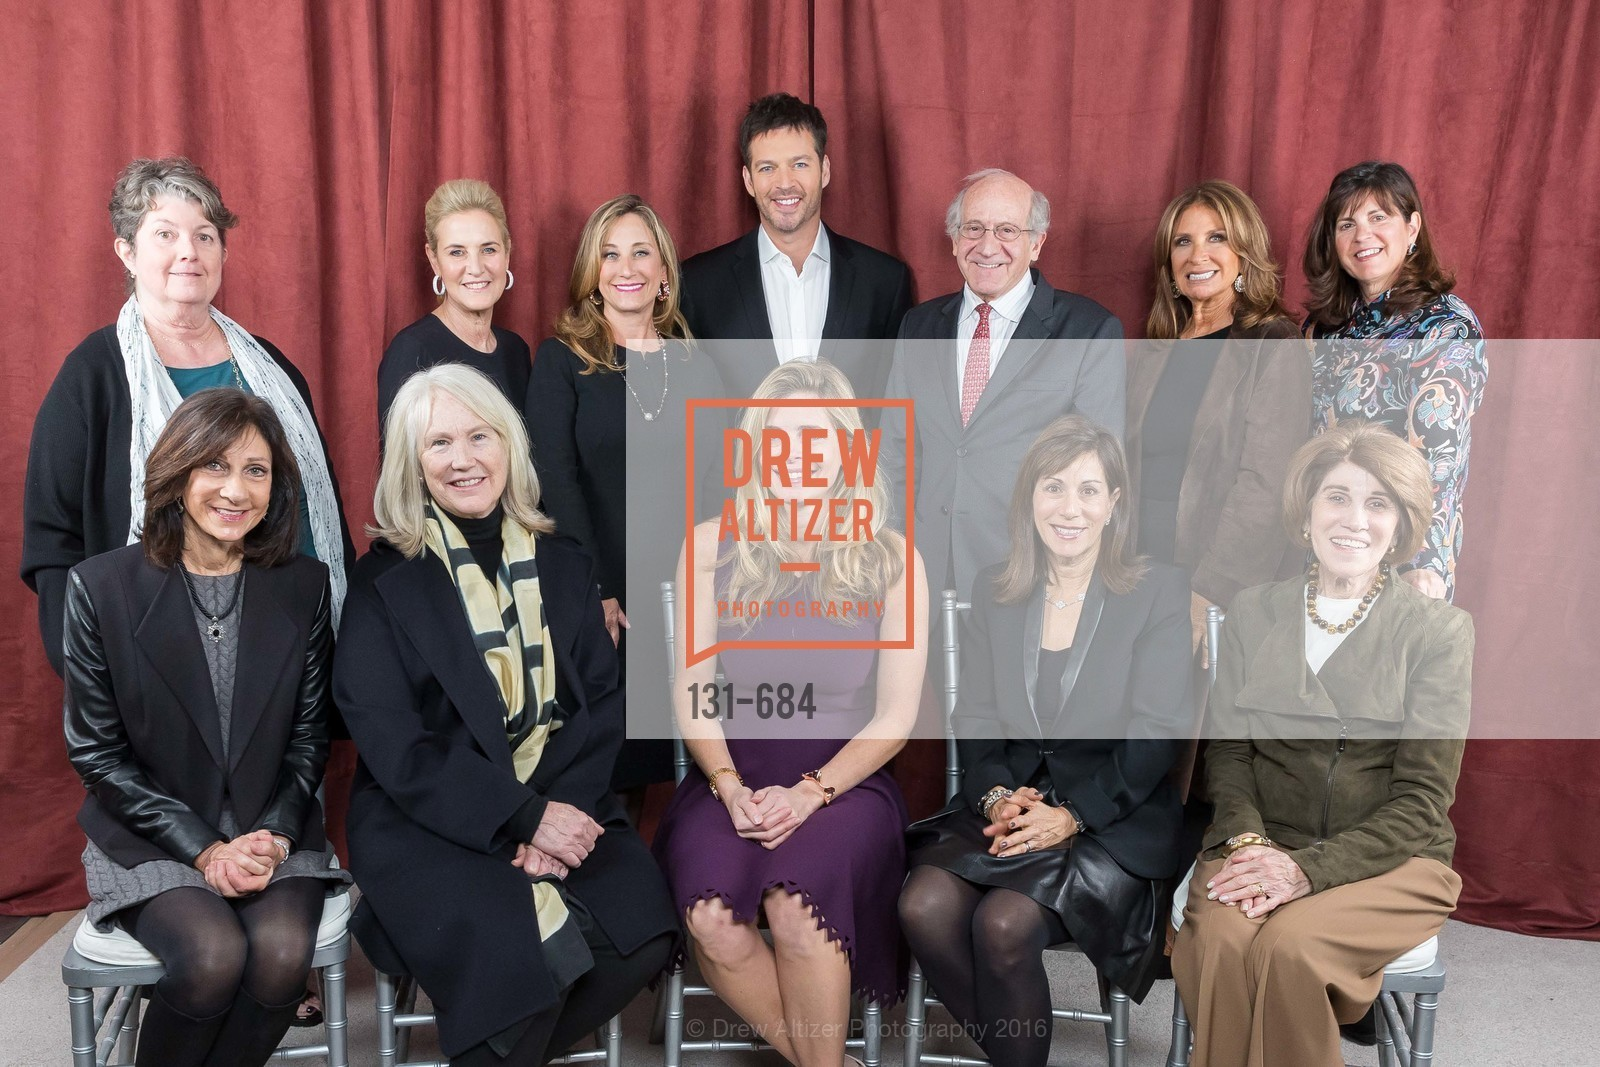 Laurie Kraus Lacob, Deborah Berek, Ann Doerr, Lisa Goldman, Dianne Taube, Suzanne Crandall, Harry Connick Jr., Jonathan Berek, Susie Fox, Lisa Schatz, Fran Codispoti, Jane Solomon, Under One Umbrella, Sharon Heights Golf and Country Club, January 13th, 2016,Drew Altizer, Drew Altizer Photography, full-service agency, private events, San Francisco photographer, photographer california